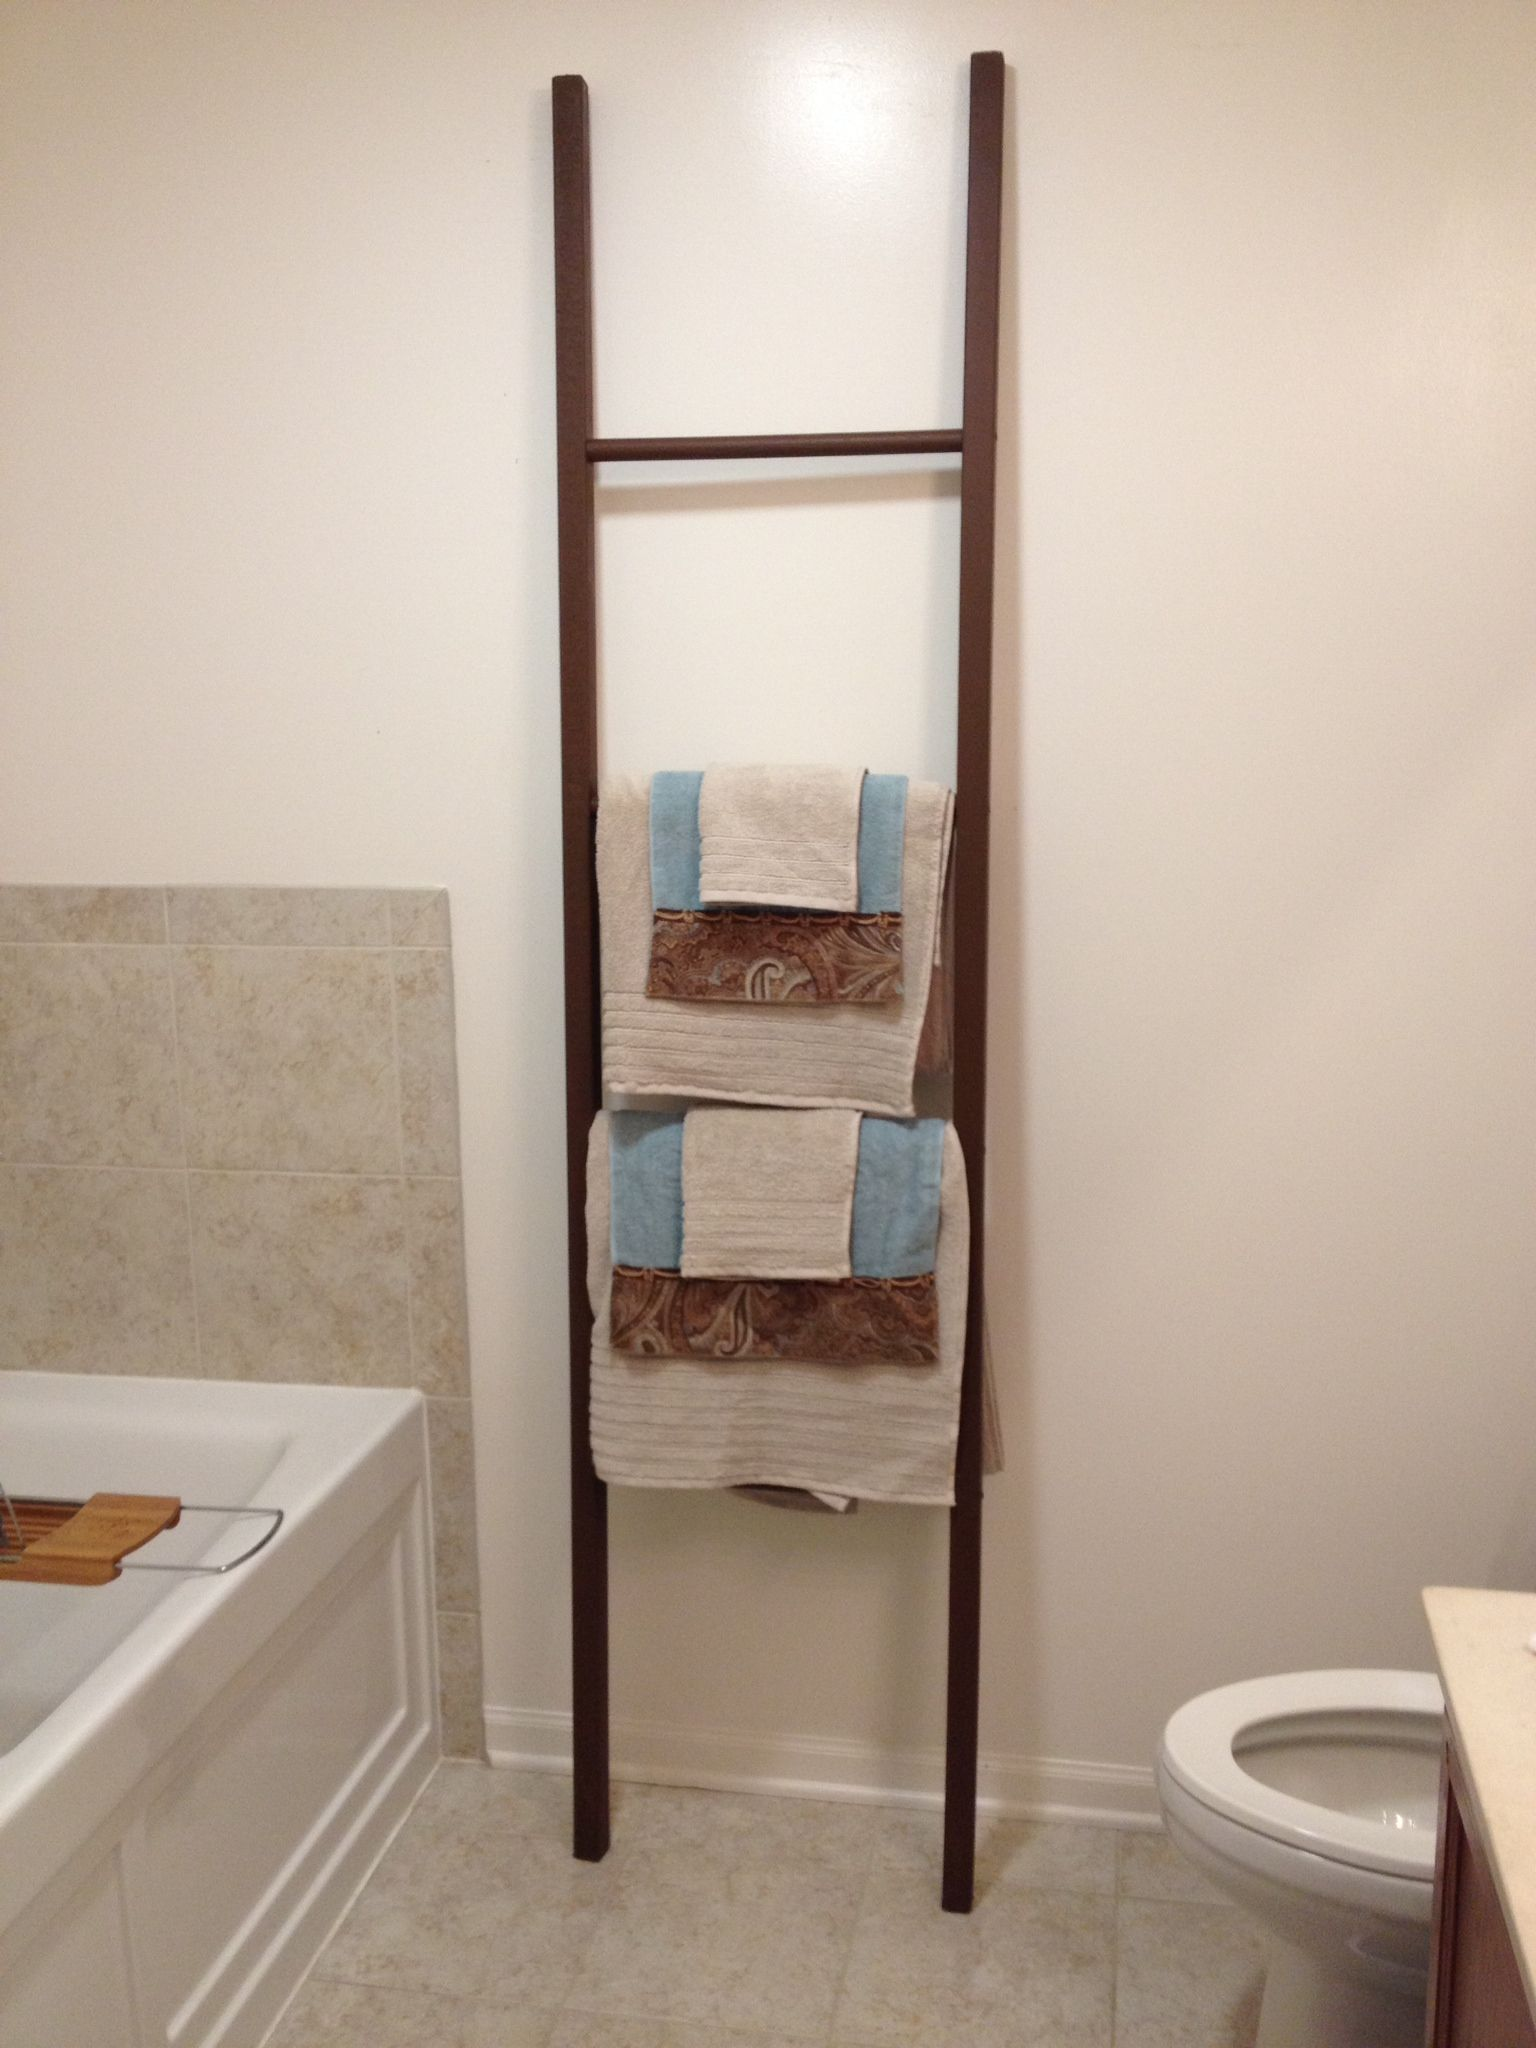 Bathroom towel storage homemade ladder home pinterest for Bathroom towel storage